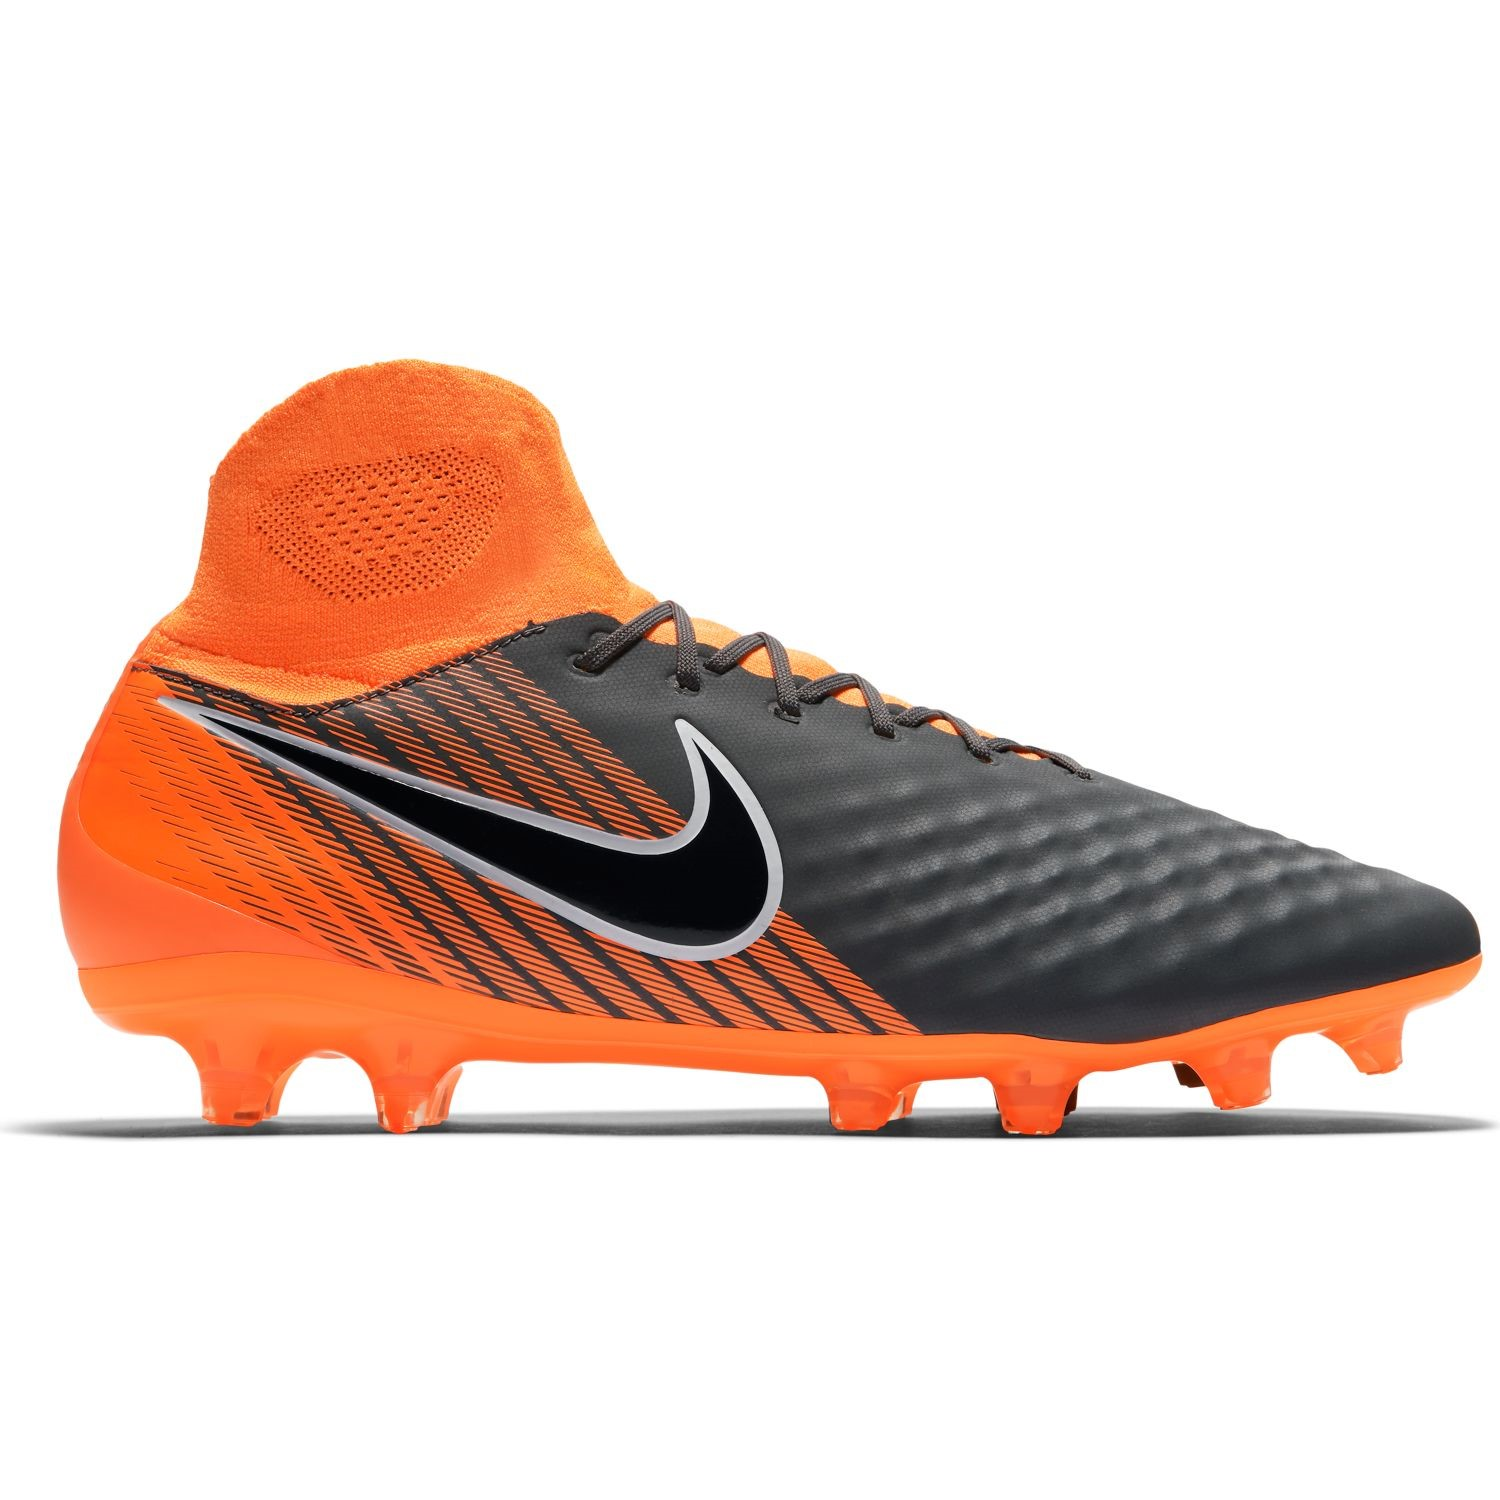 more photos 952b5 79a89 Nike Magista Obra II Pro DF FG - Mens Football Boots - Dark Grey Black